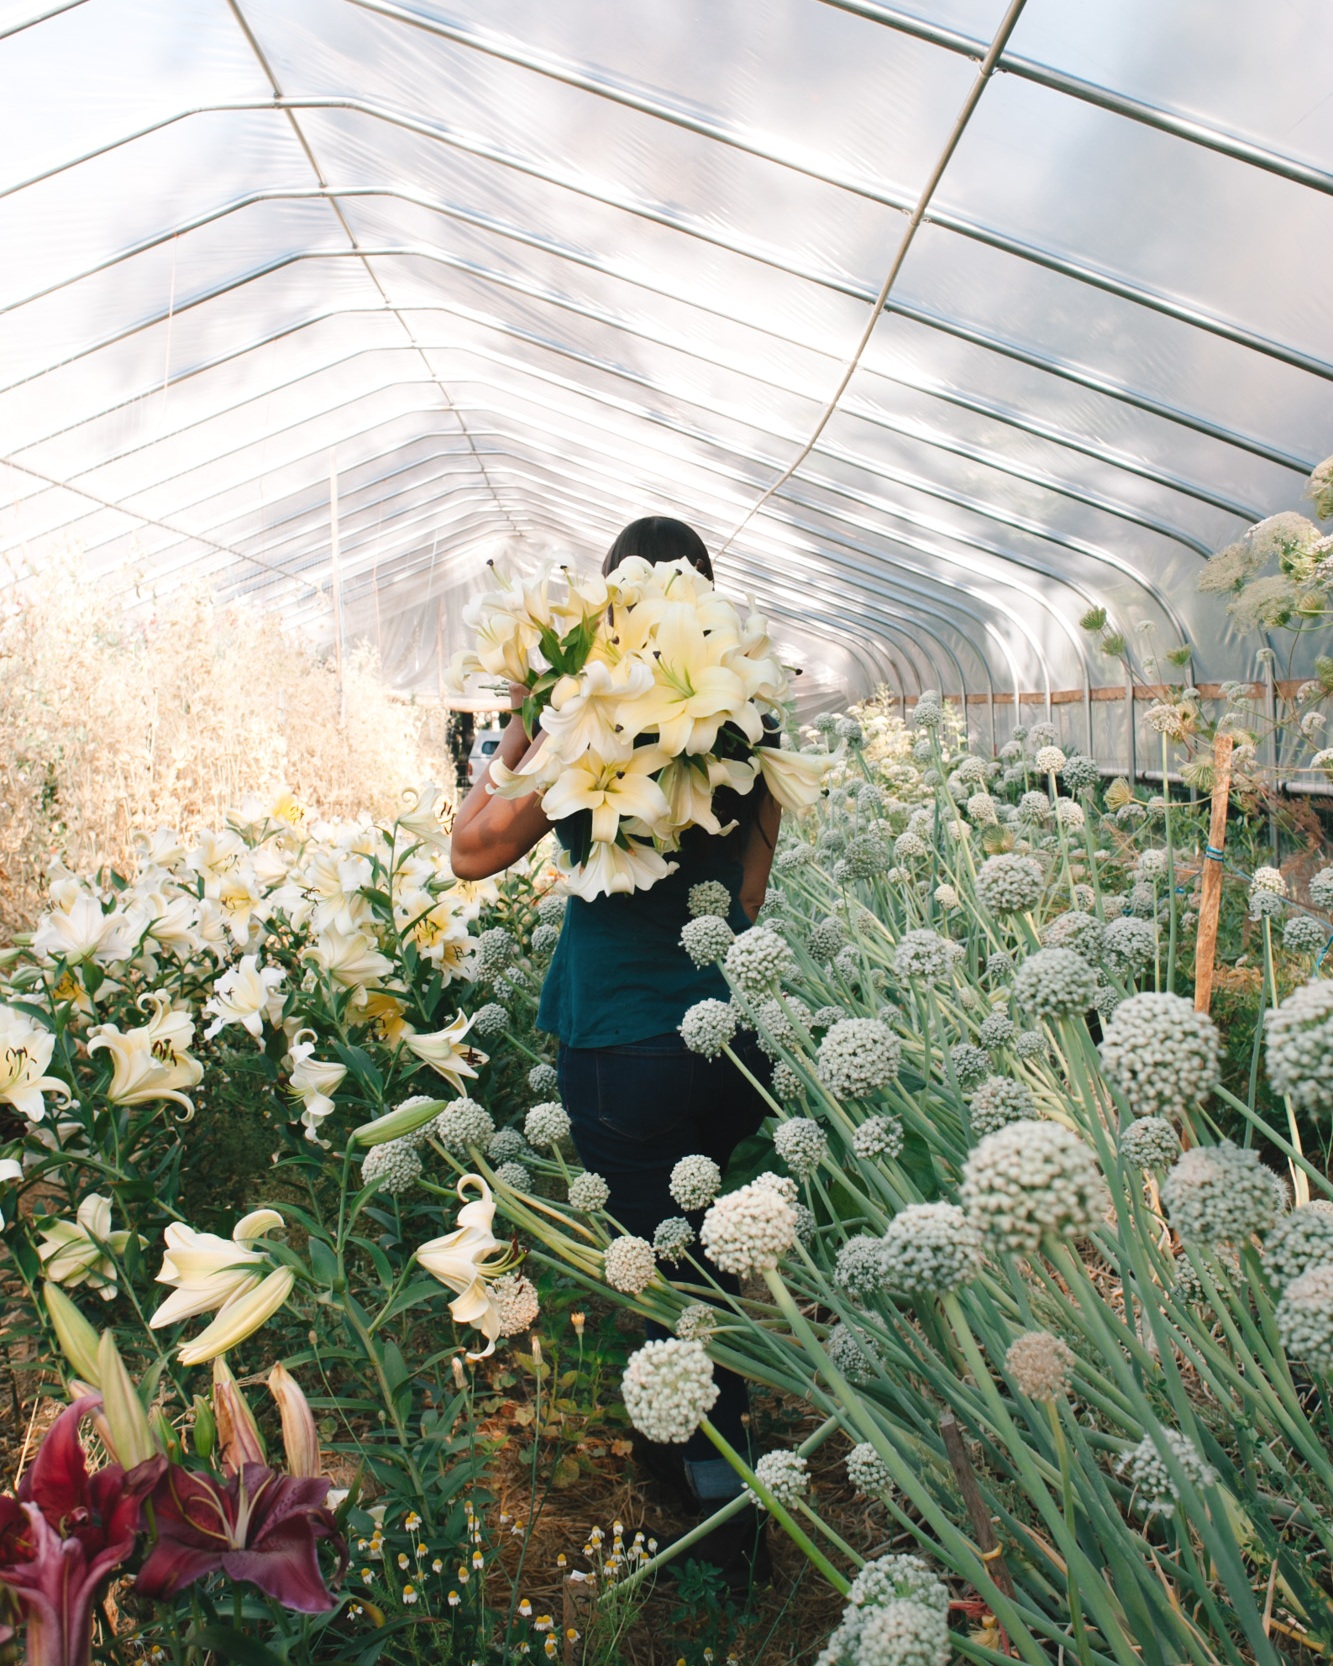 - Welcome to Flora-- our organic flower farm and floral design studio located in Southern Oregon. Our purpose and passion is growing exceptional quality cut flowers and flower seeds. We select highly desirable cultivars that are prized by brides and wedding designers; we harvest our cut flowers at their peak beauty; we are always on the look-out for unusual and new varieties; and we enjoy the shared creative process of growing a particular flower crop with our clients in mind.